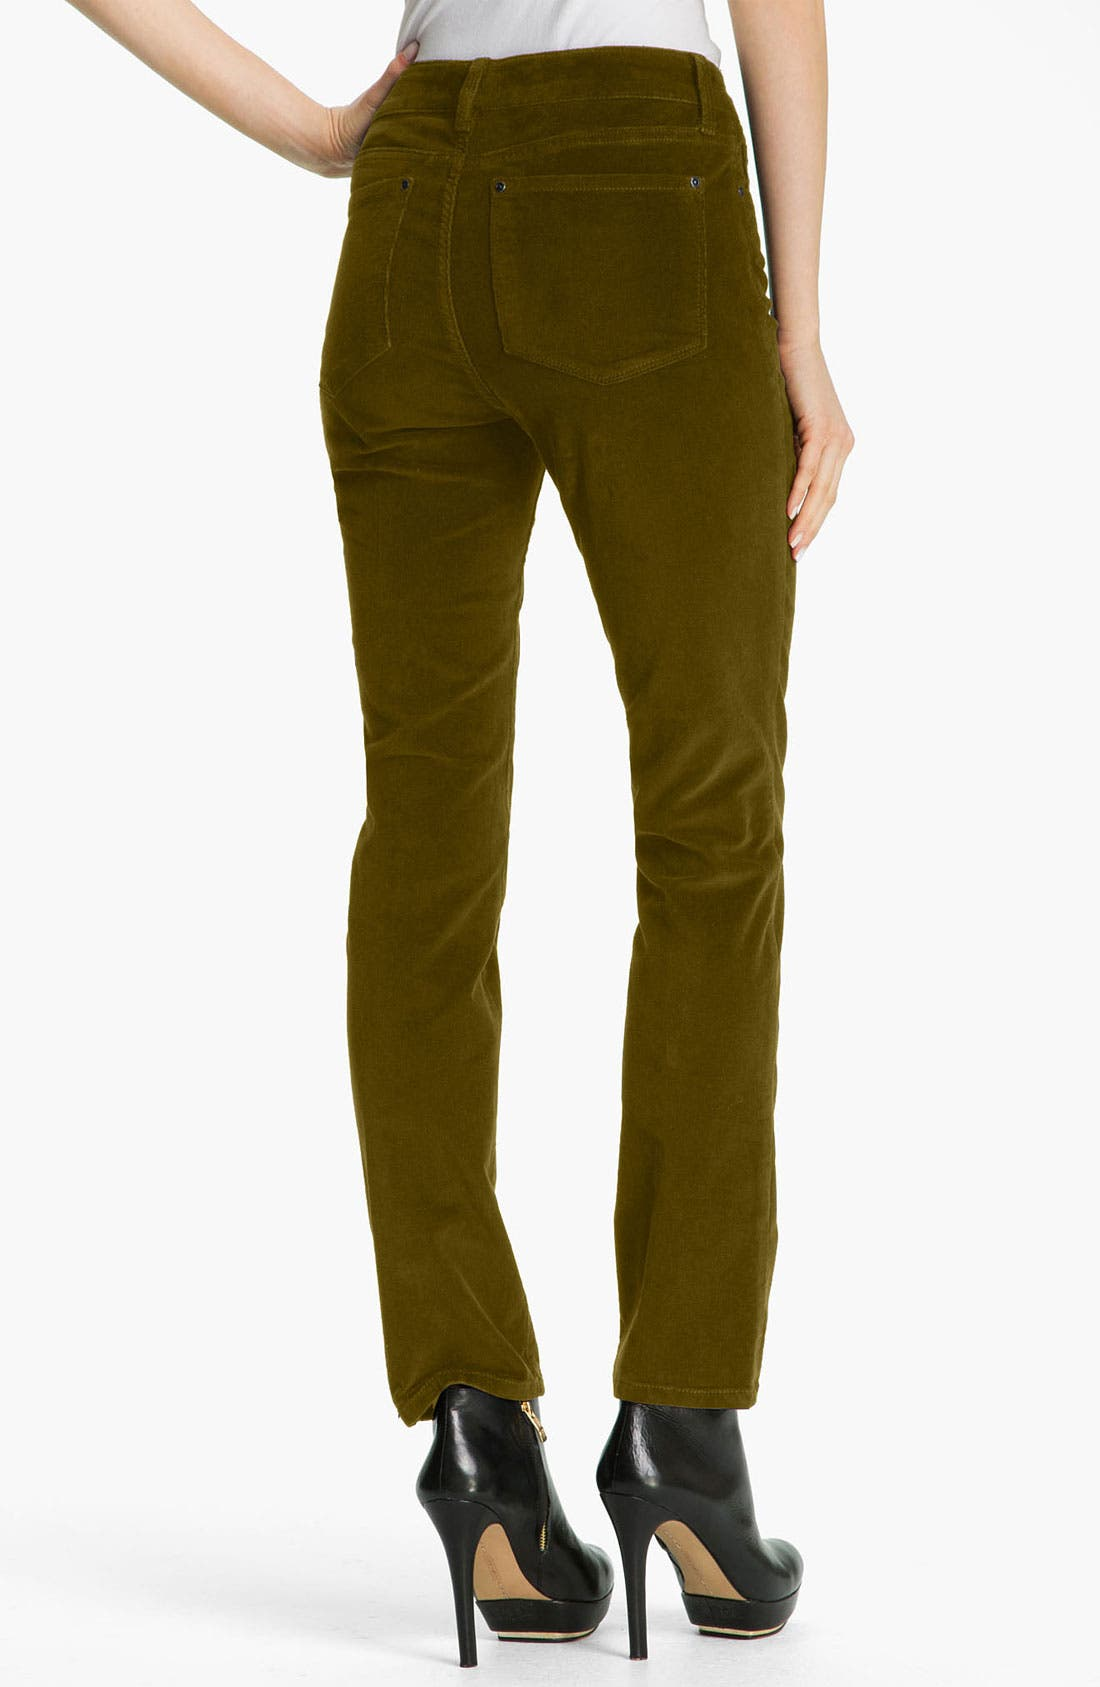 Alternate Image 1 Selected - NYDJ Skinny Corduroy Jeans